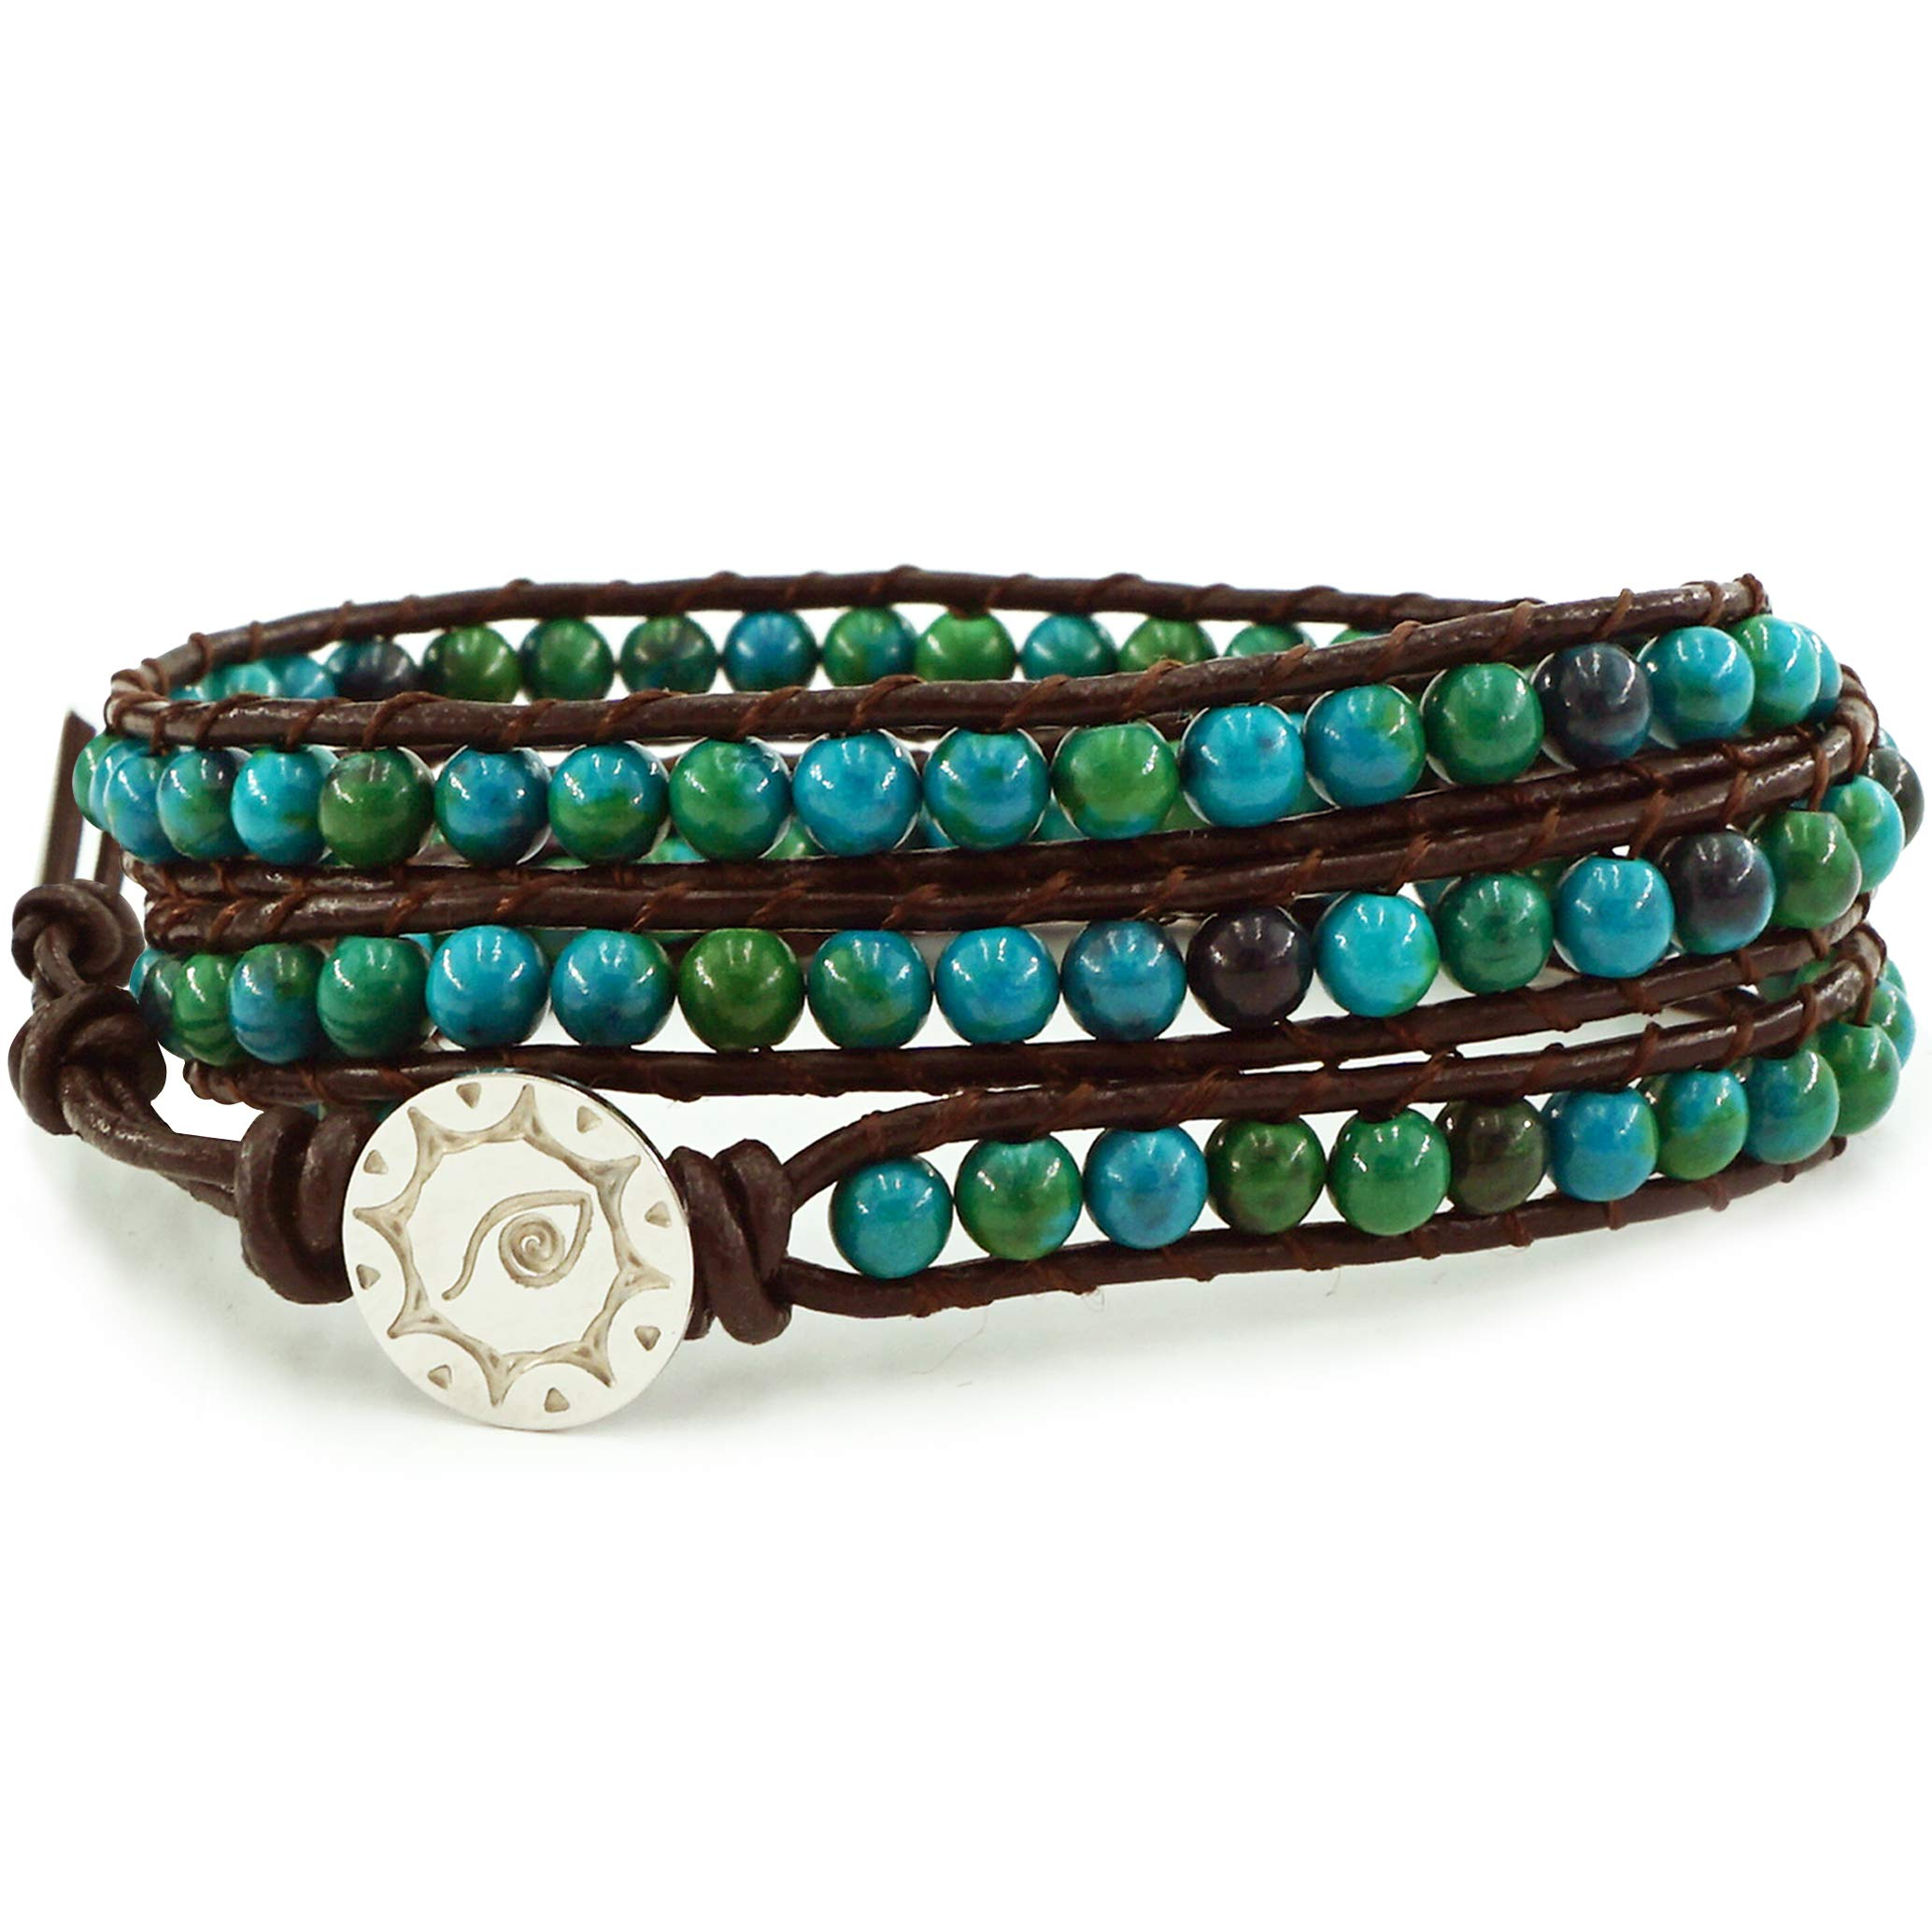 BLUEYES COLLECTION ''Amicable Blue Mix Green ChrysocollaGemstone Beads Genuine Leather Bracelet, 3 Wraps by BLUEYES COLLECTION